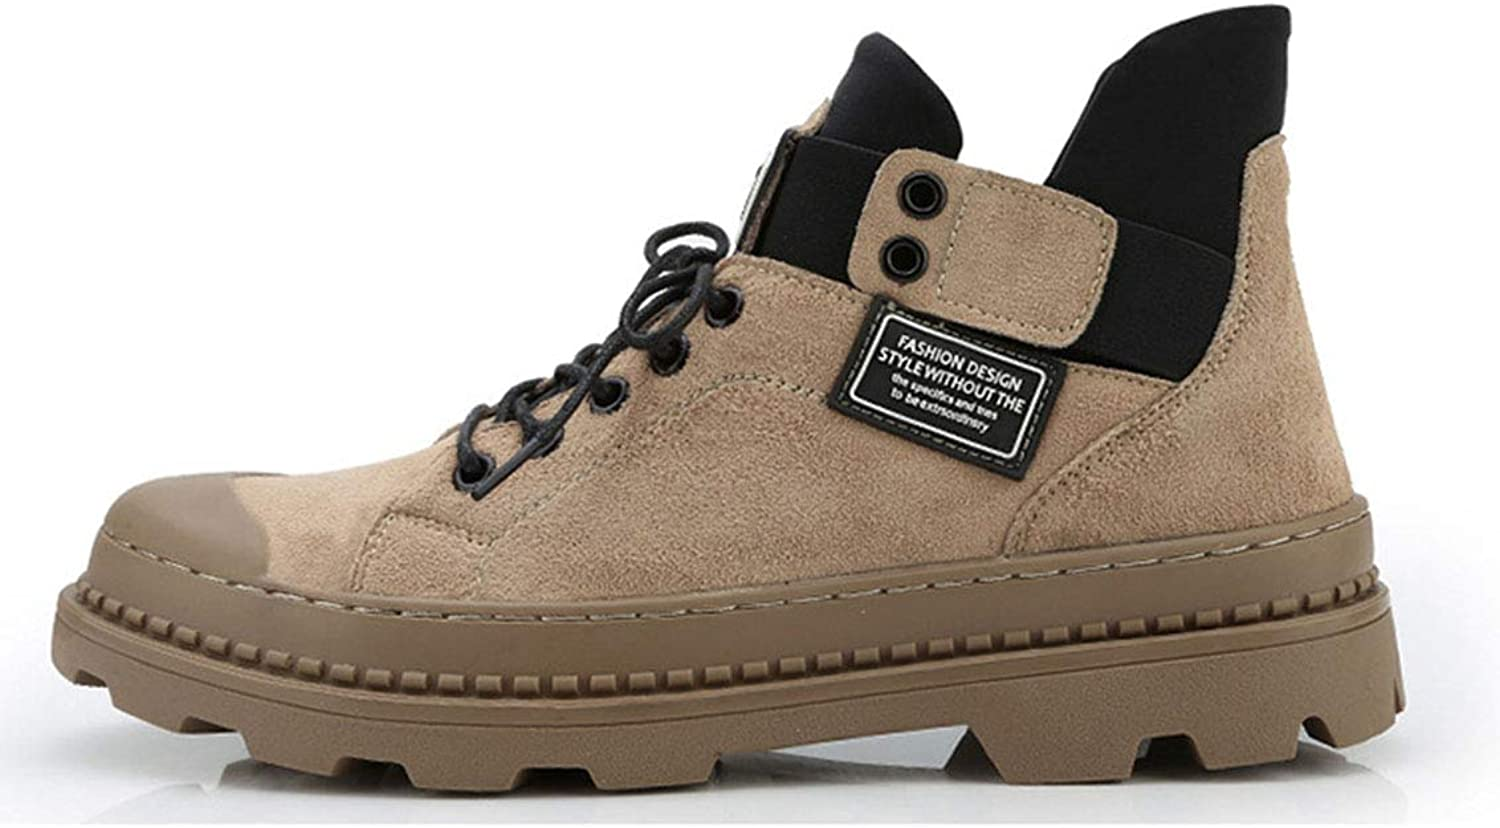 Men's Martin Boots Leather matteThick Base Increased Cotton shoes lace up Waterproof Padded Casual shoes Autumn and Winter Outdoor